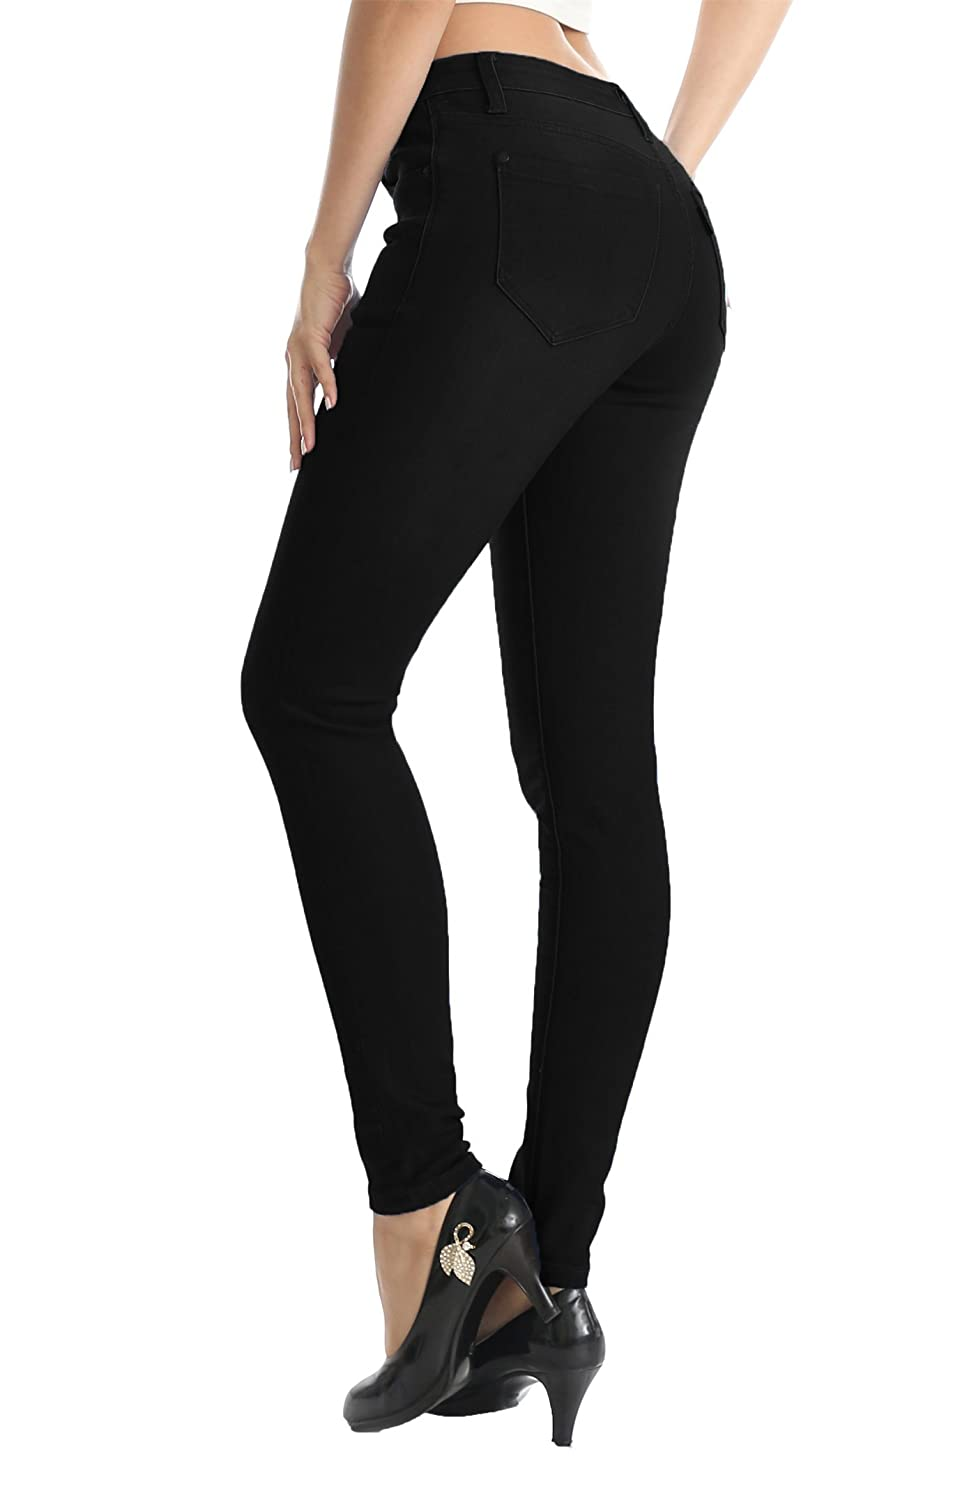 2ec143f135d ... ZADDIC womens stretch skinny jeans made of excellent elastic fabric  that is soft to touch and comfortable for everyday wear. Butt Lift   Slim  Cut Design ...